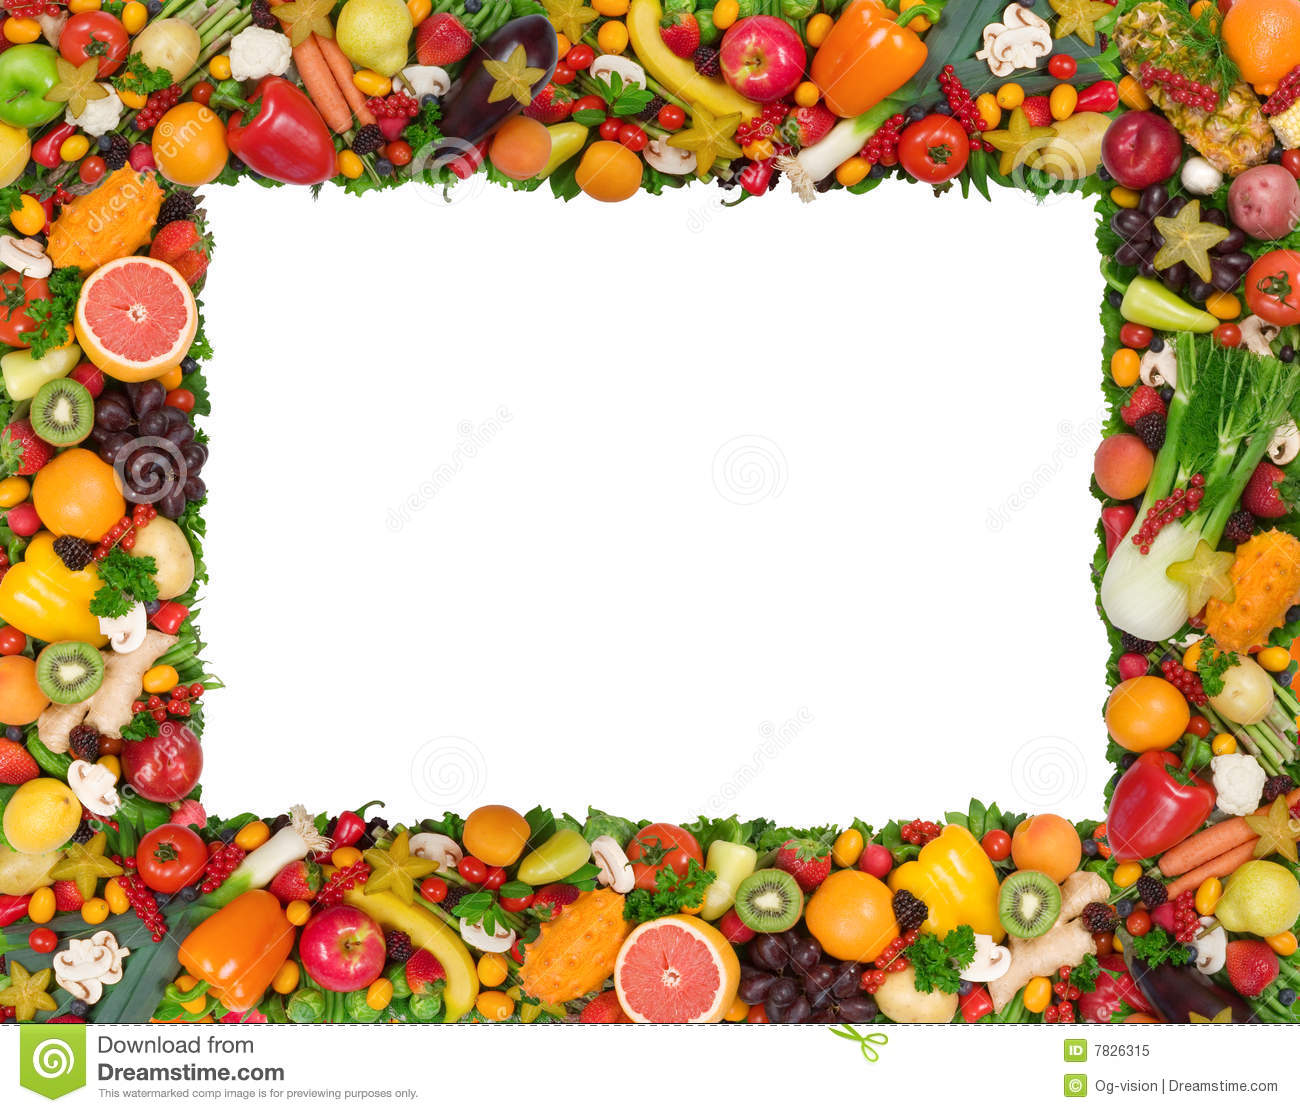 Fruit and Vegetables Wallpapers For Desktop Best Collection